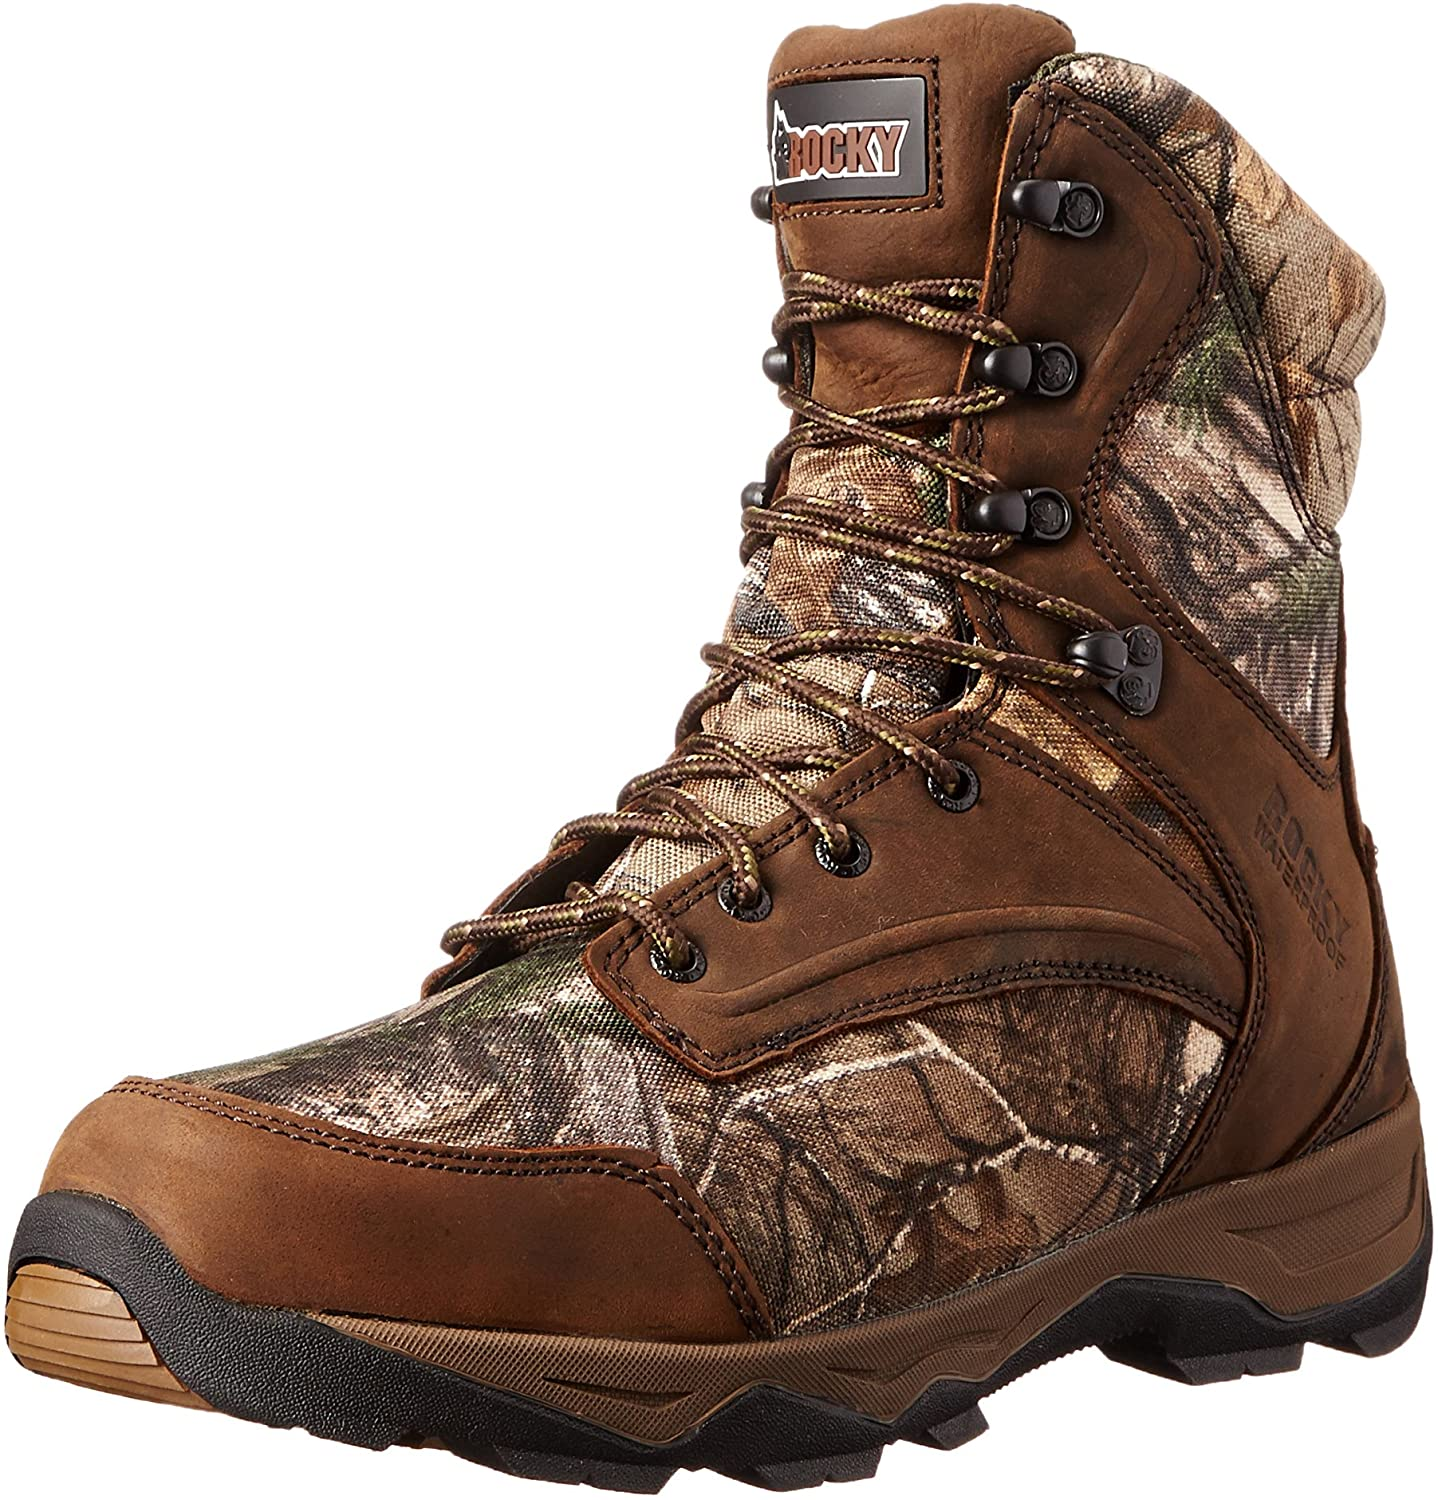 25% OFF Ranking TOP10 Rocky Men's 8 Inch Retraction 800G Boot Hunting